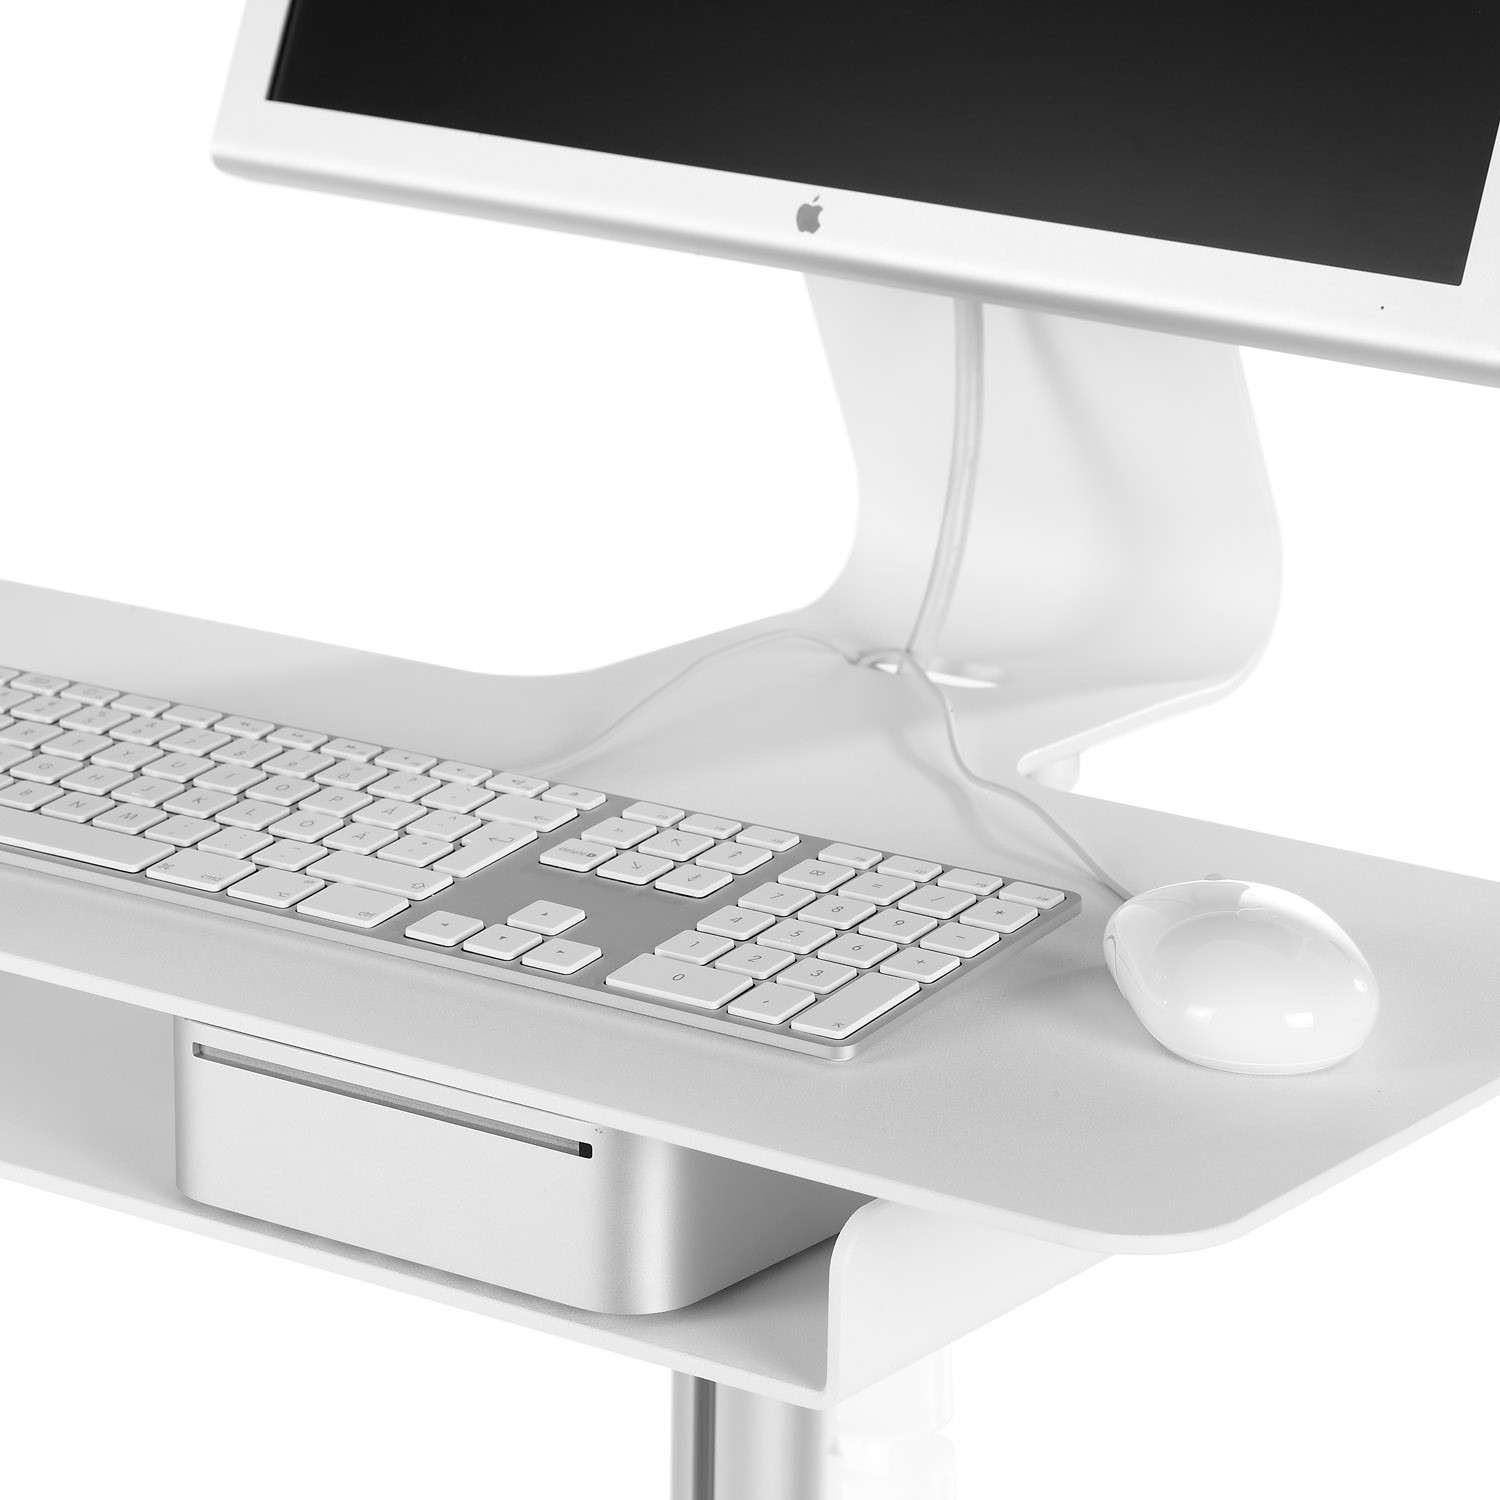 Mixx Lectern with Keyboard and Mouse